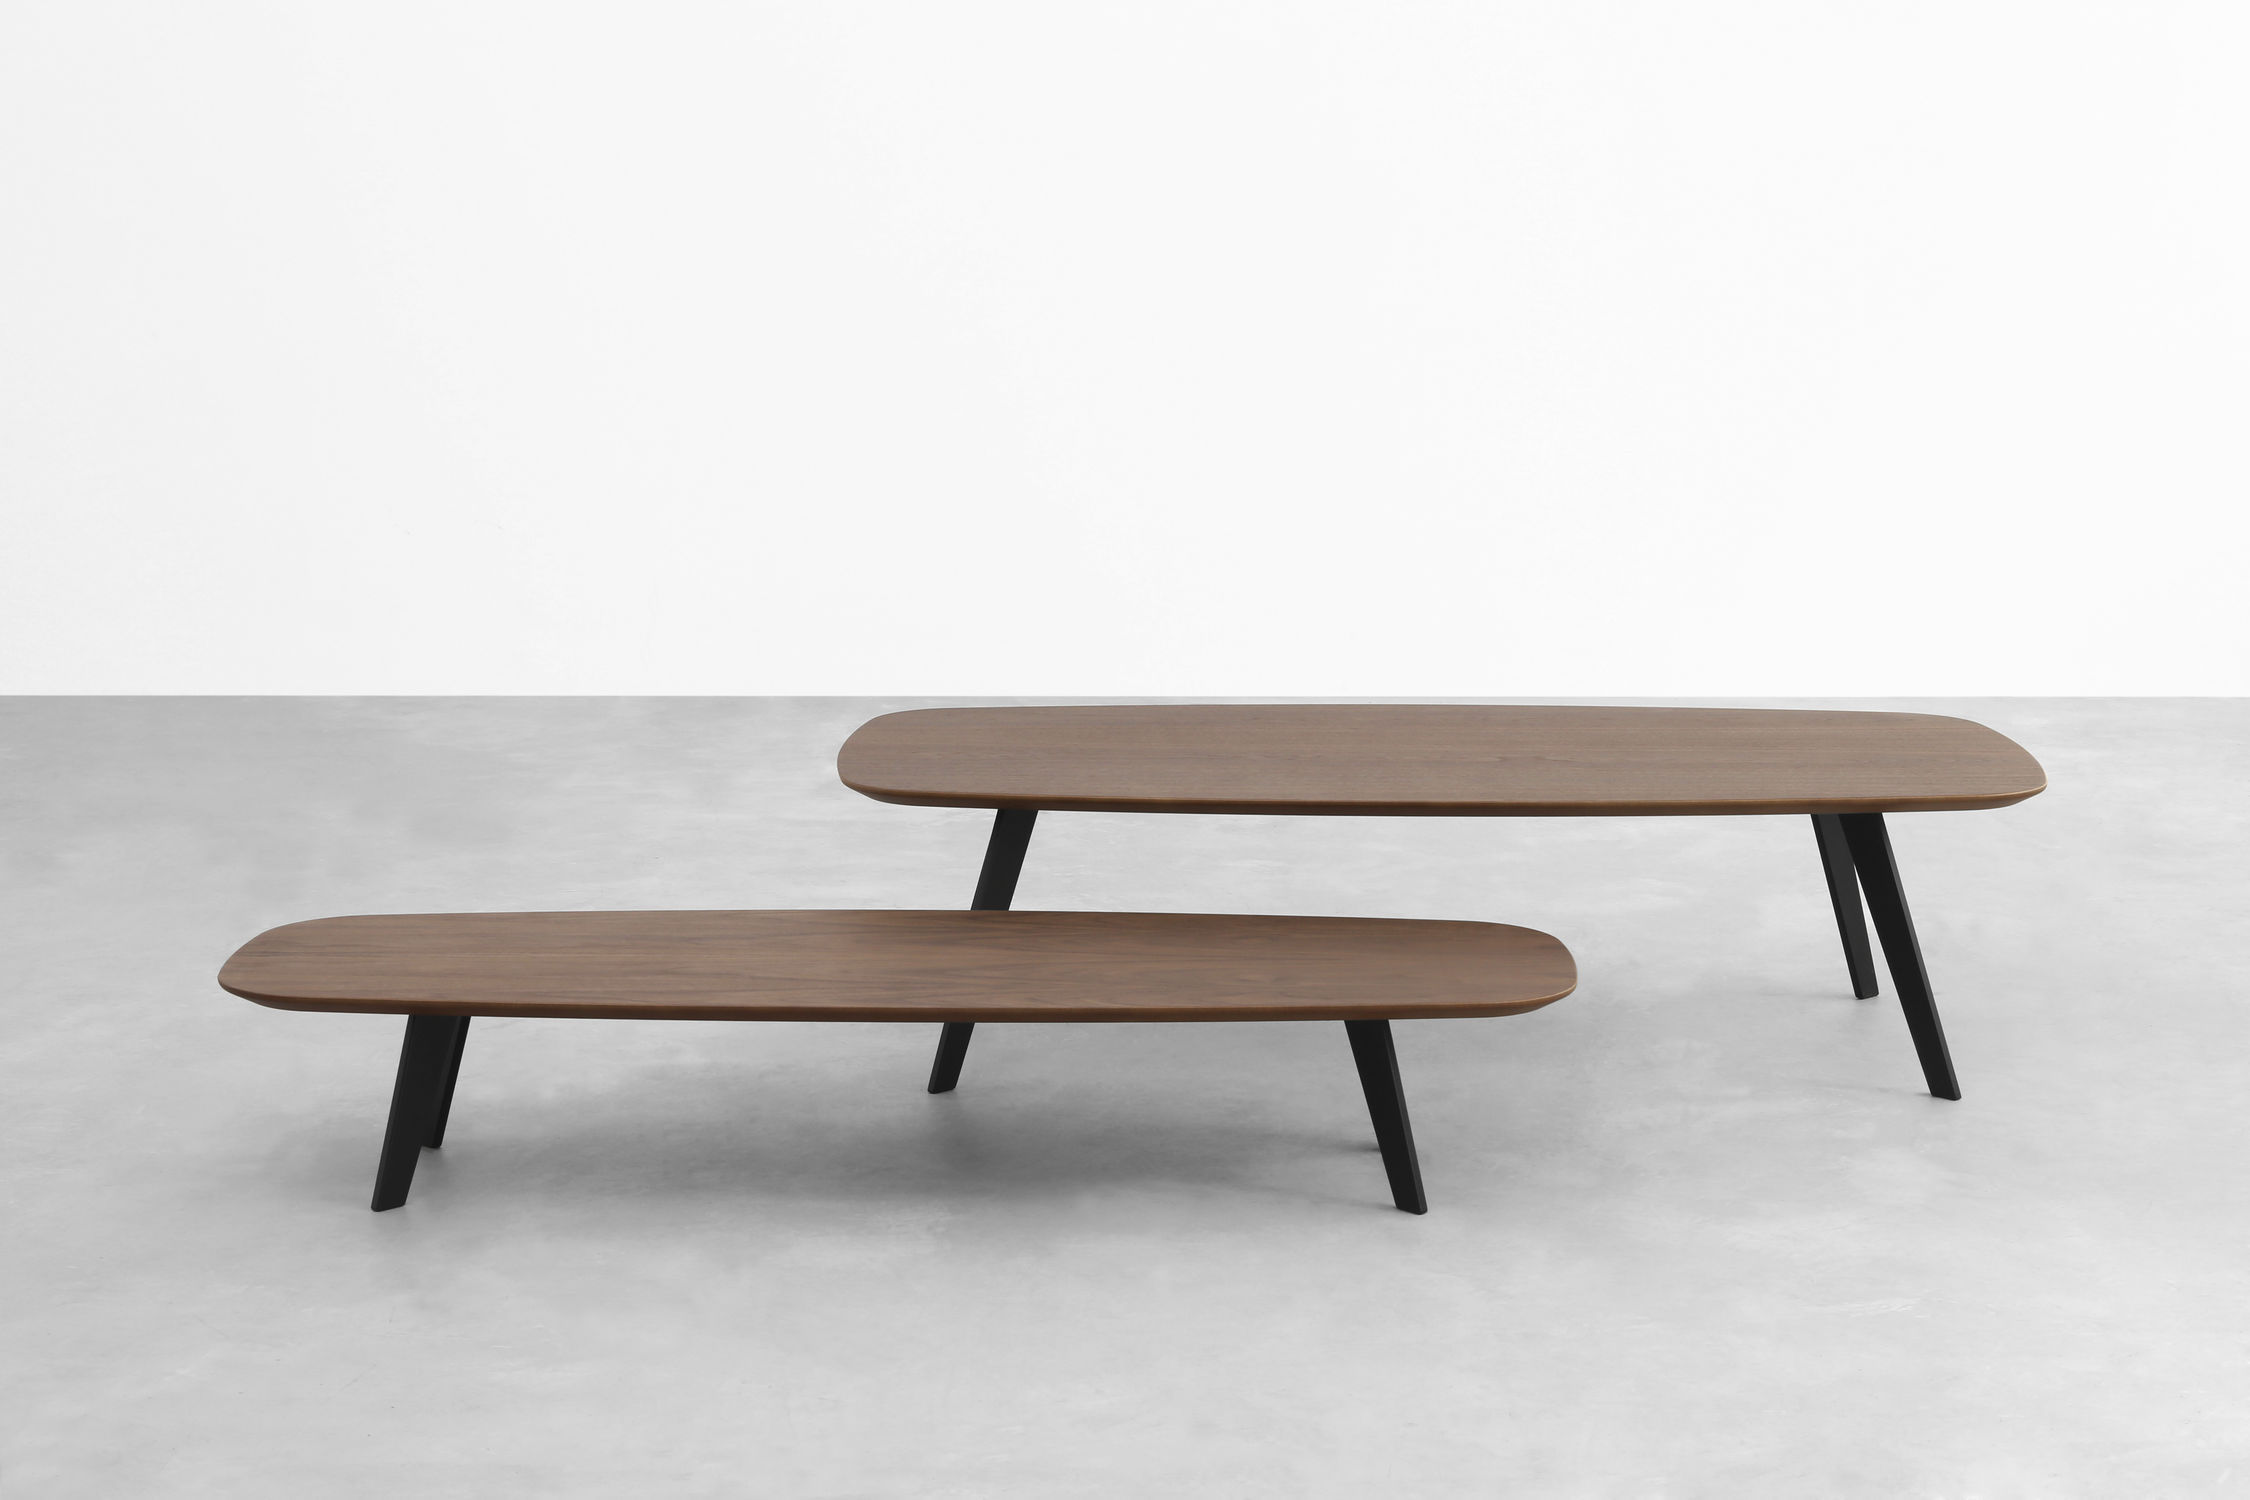 Sunshiny Coffee Table Wooden Rectangular Solapa By Jon Gasca Coffee Table Wooden Rectangular Solapa By Jon Coffee Table Legs Coffee Tables Storage Uk houzz 01 Contemporary Coffee Table